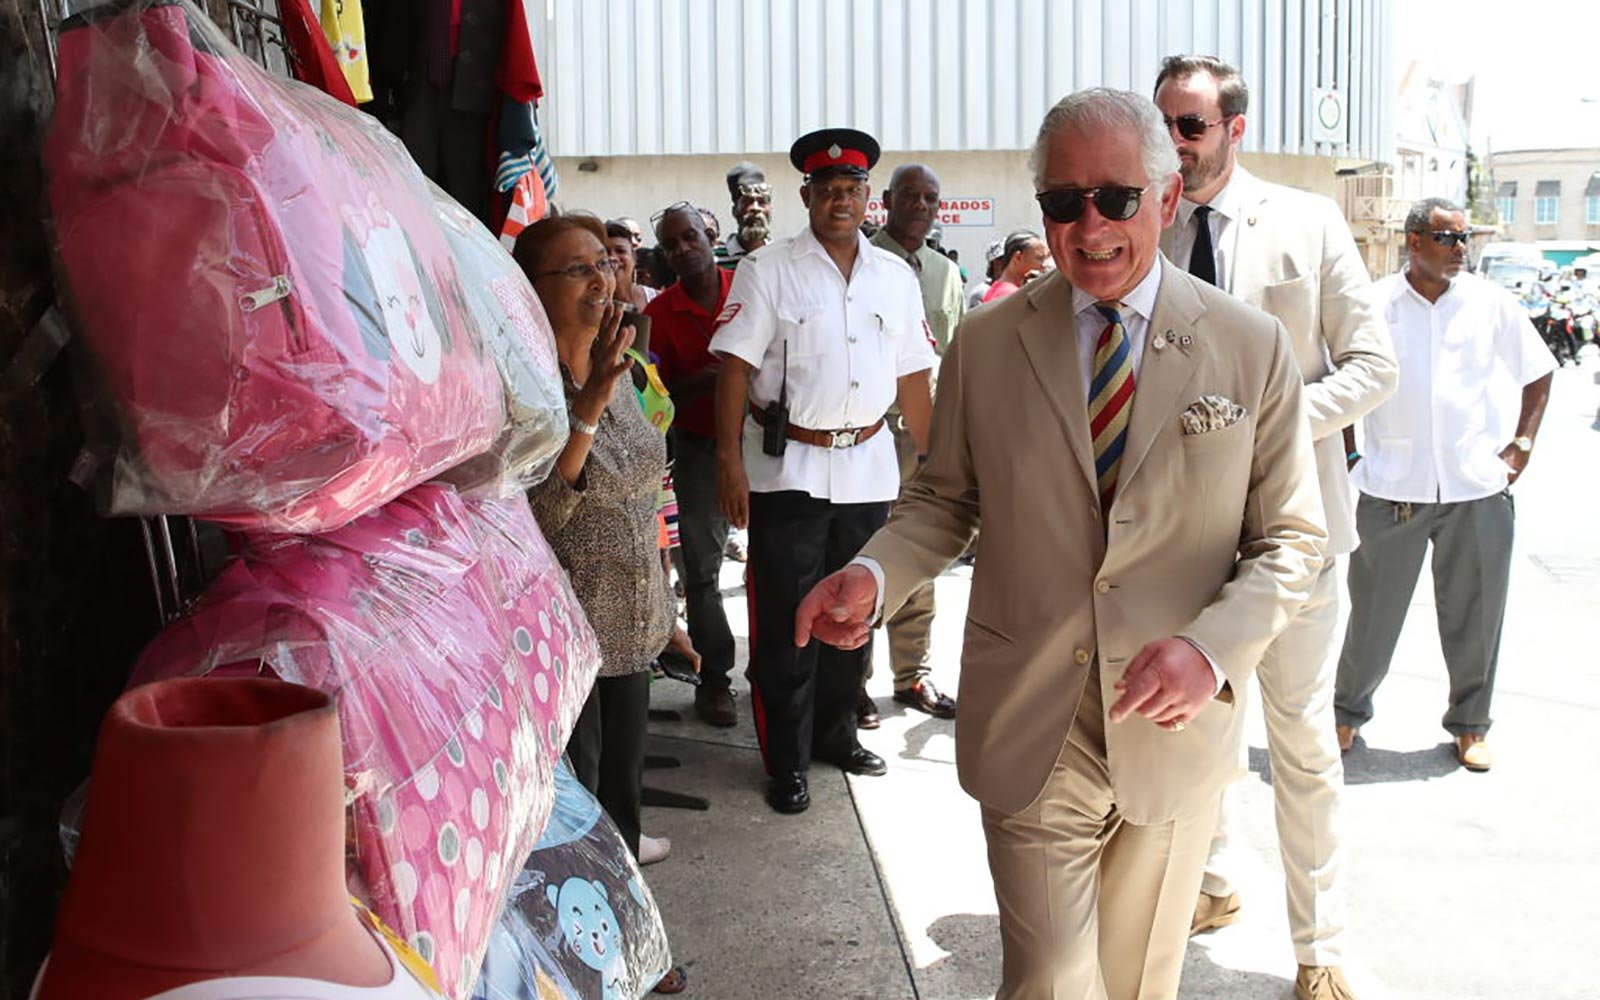 Prince Charles in The Caribbean